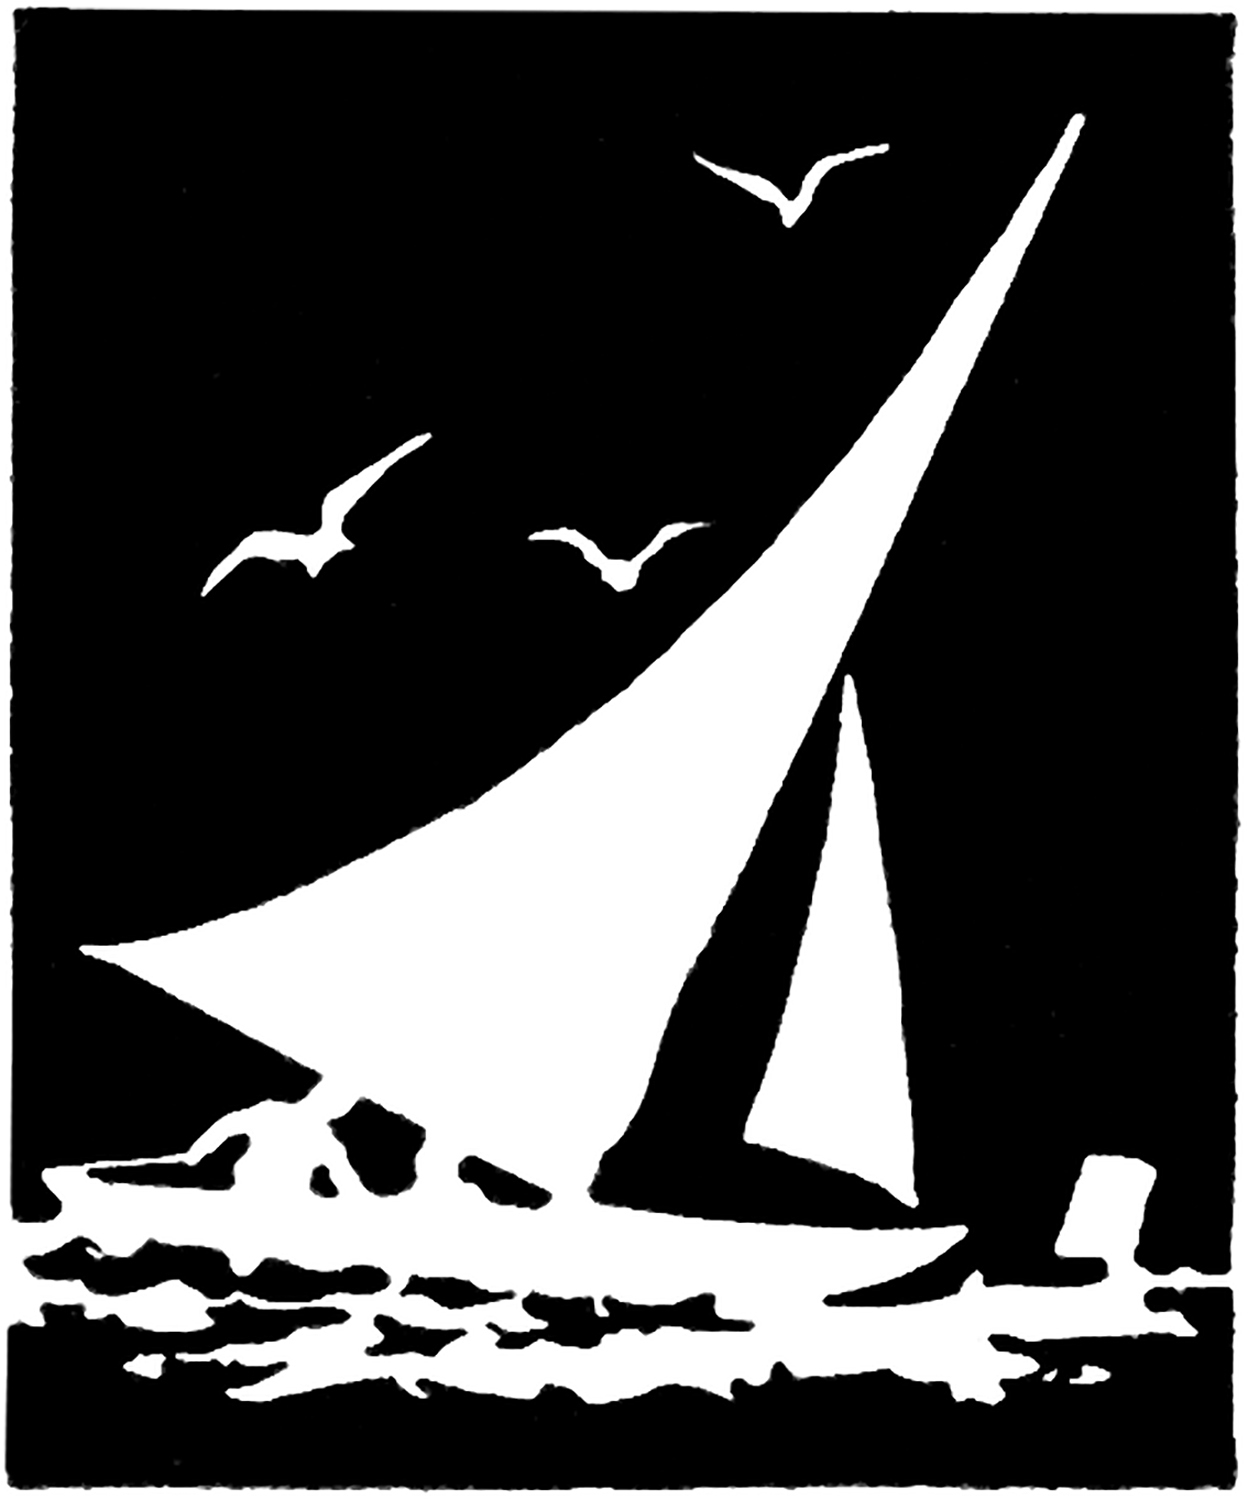 Vintage Sailboat Silhouette Image